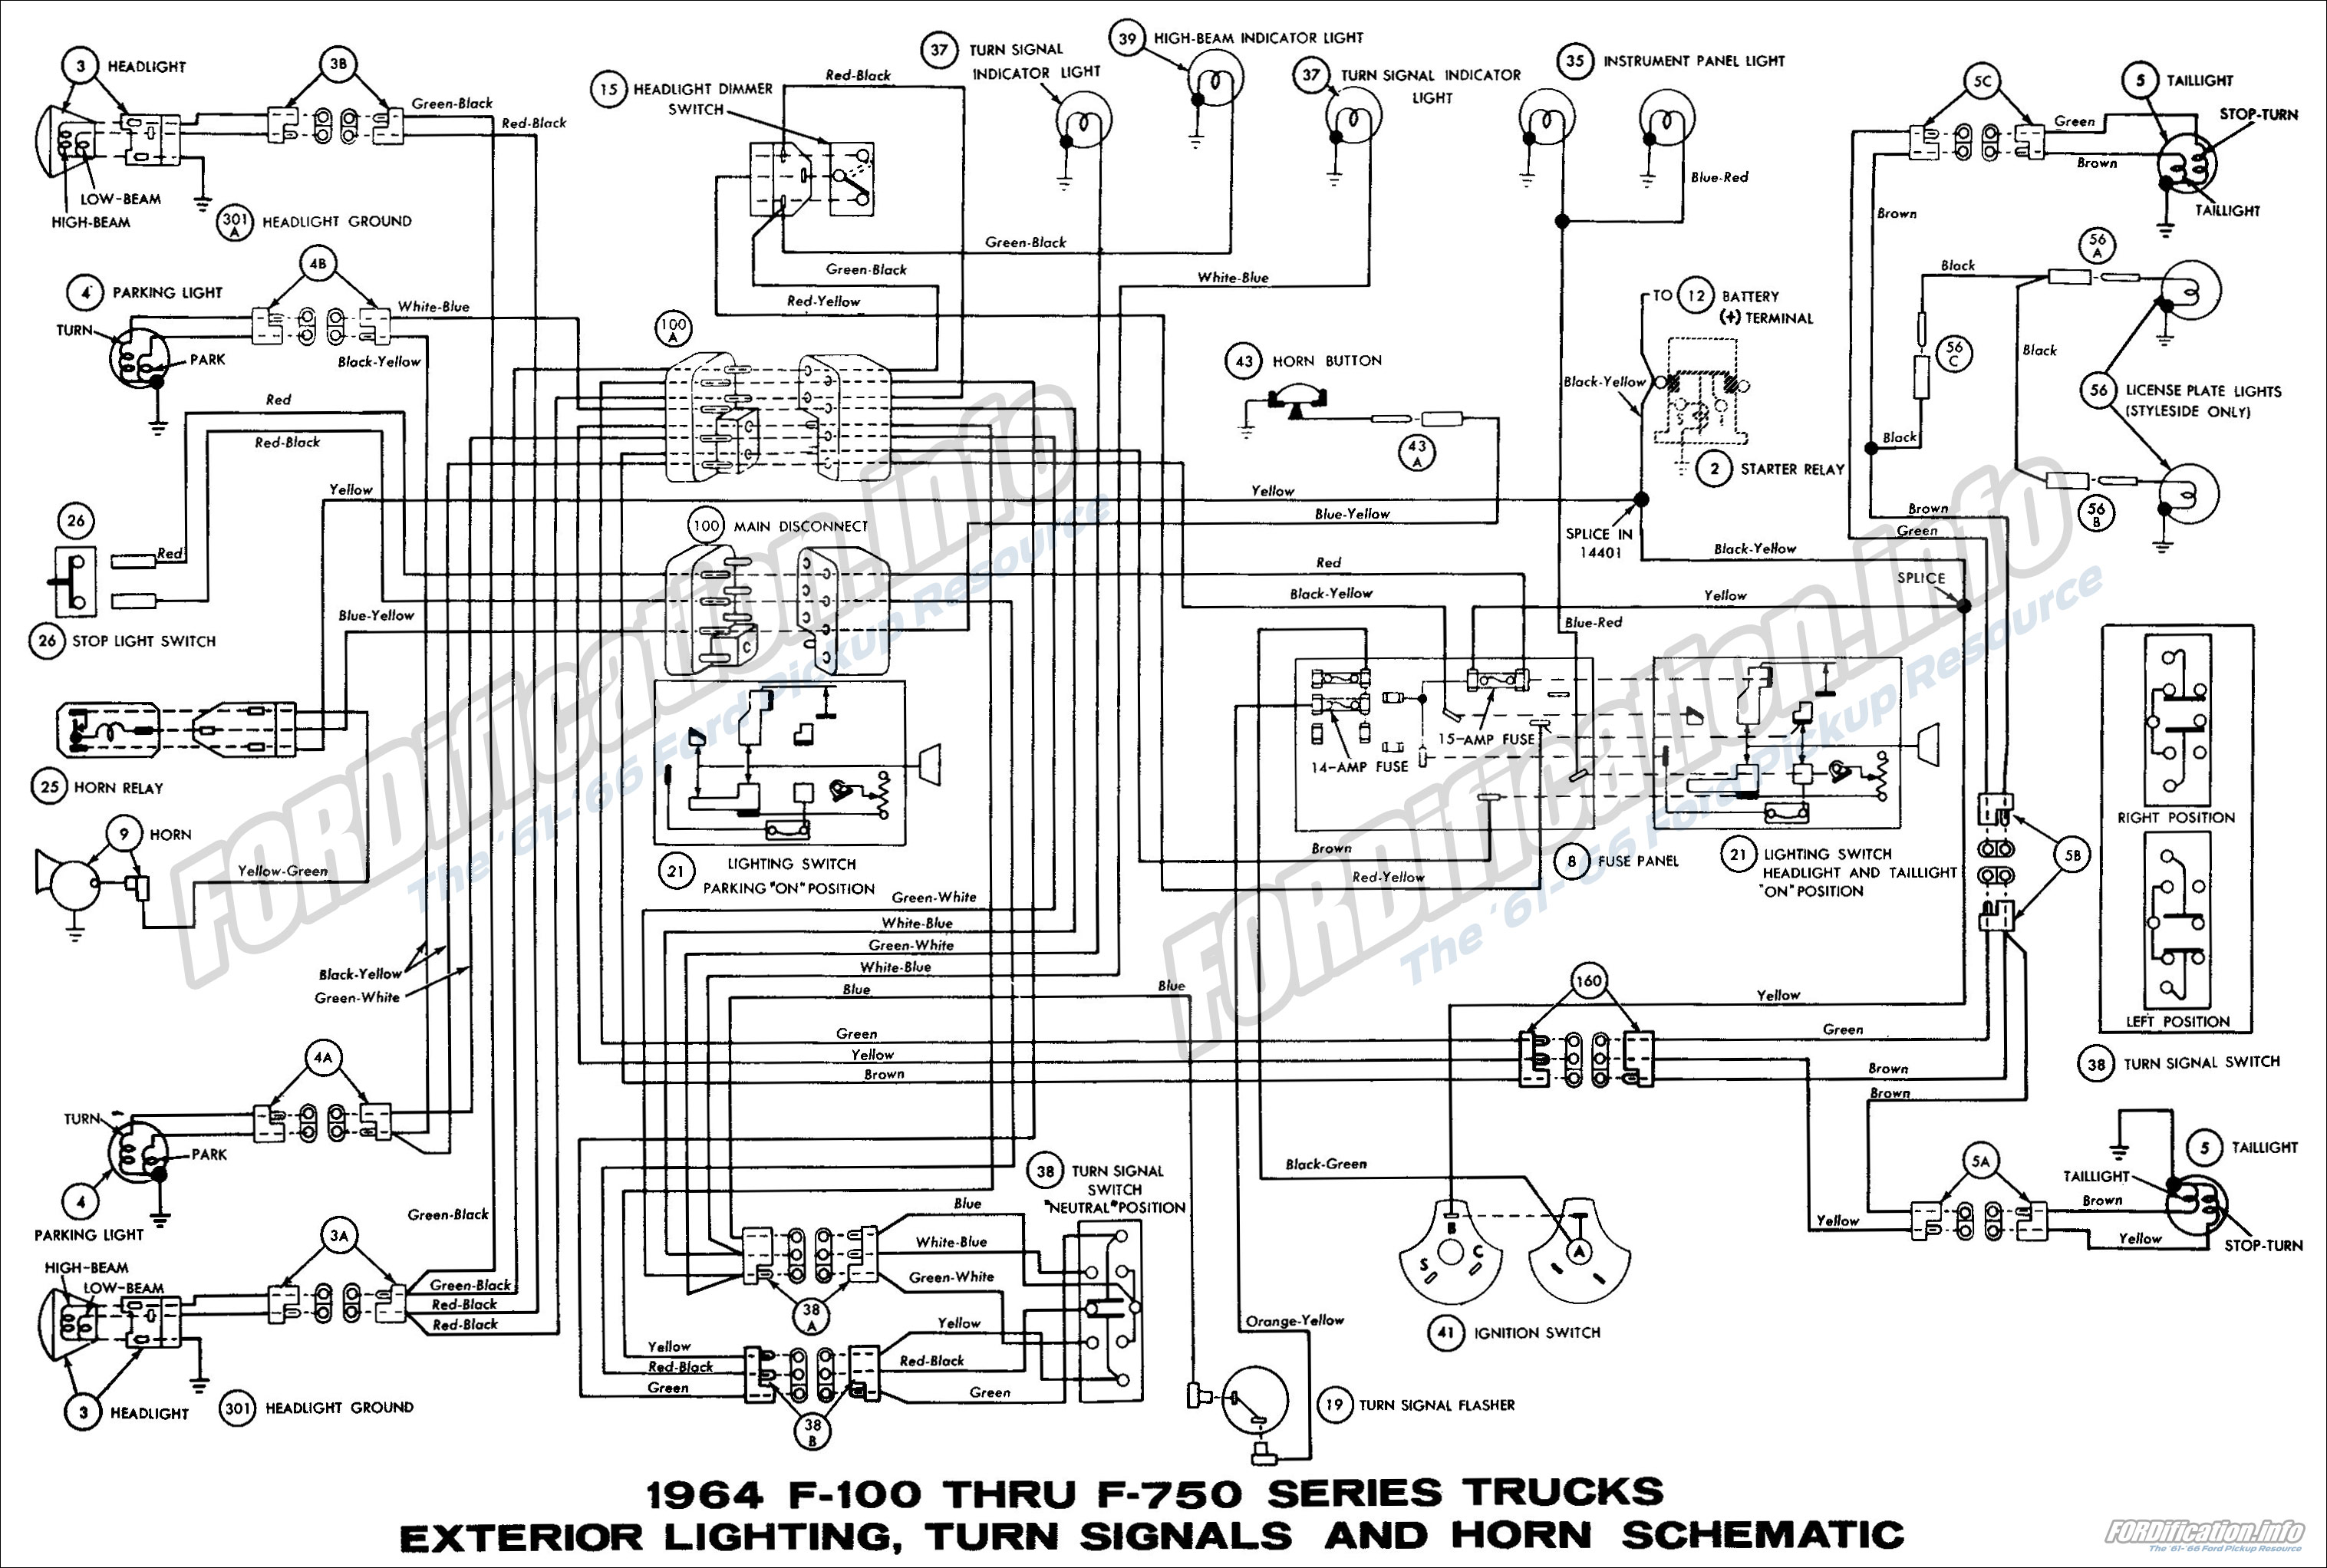 Ford F750 Wiring Diagram Schematics 2016 E450 Free Download Schematic Diagrams Rh 41 Koch Foerderbandtrommeln De 2012 2015